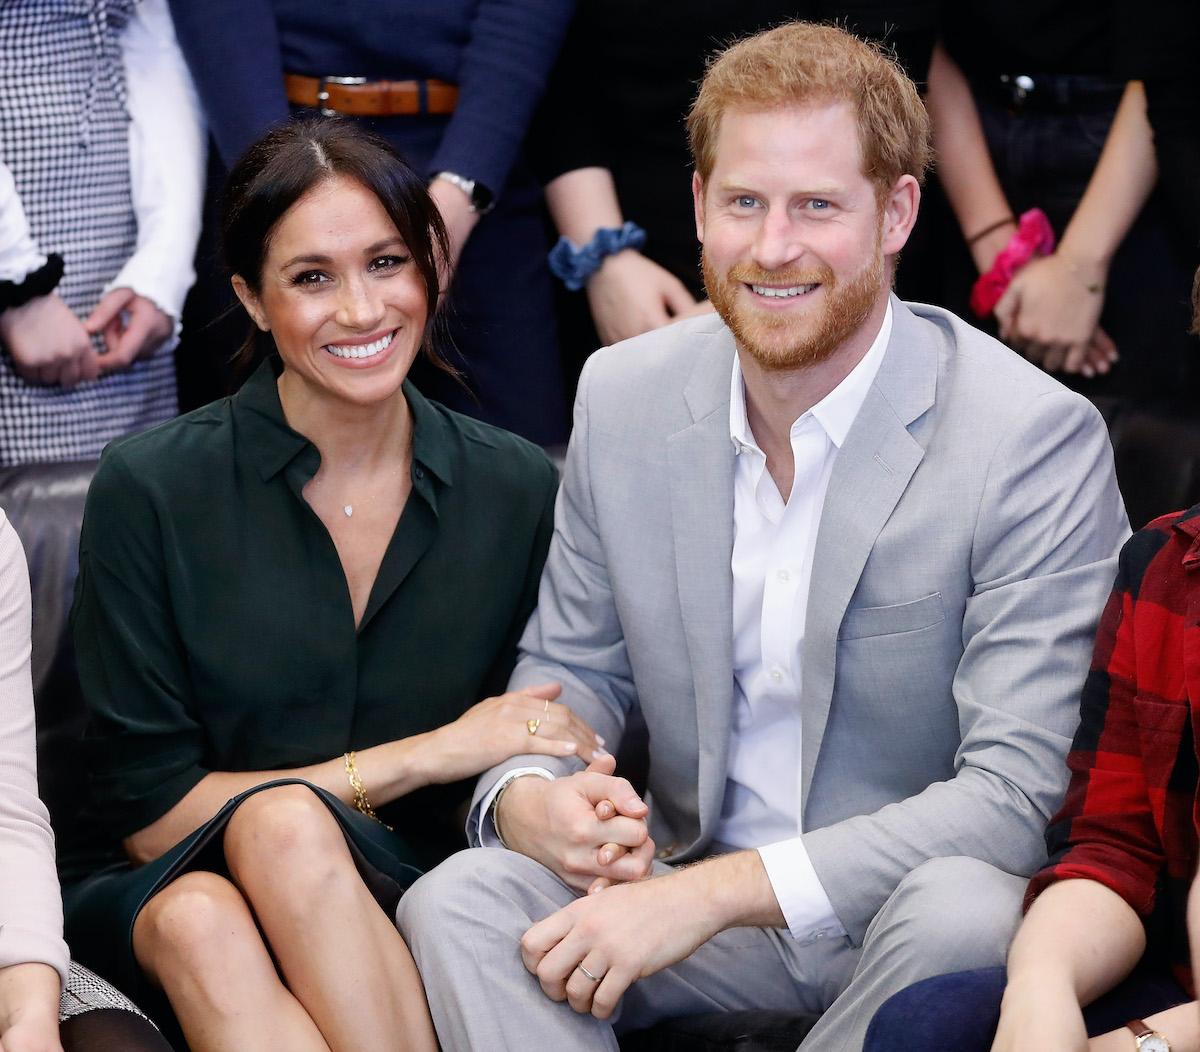 Prince Harry and Meghan Markle visit to the Joff Youth Centre in Peacehaven on May 19, 2018